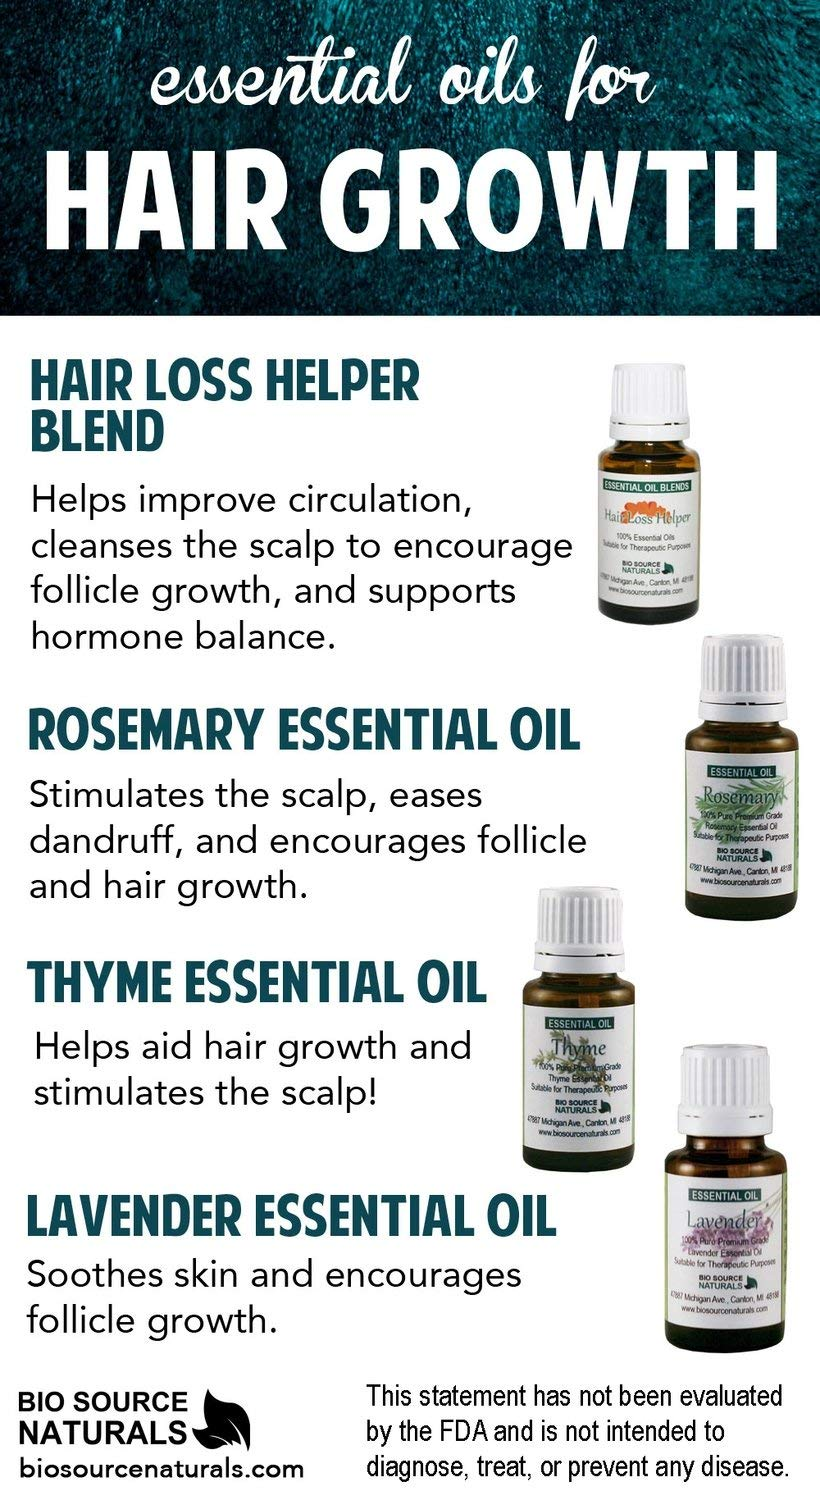 Hair Loss Helper Essential Oil Blend Aromatherapy - with Essential Oils of  Lavender, Cedarwood, Red Thyme, Rosemary 43.43 oz / 143 ml Bottle